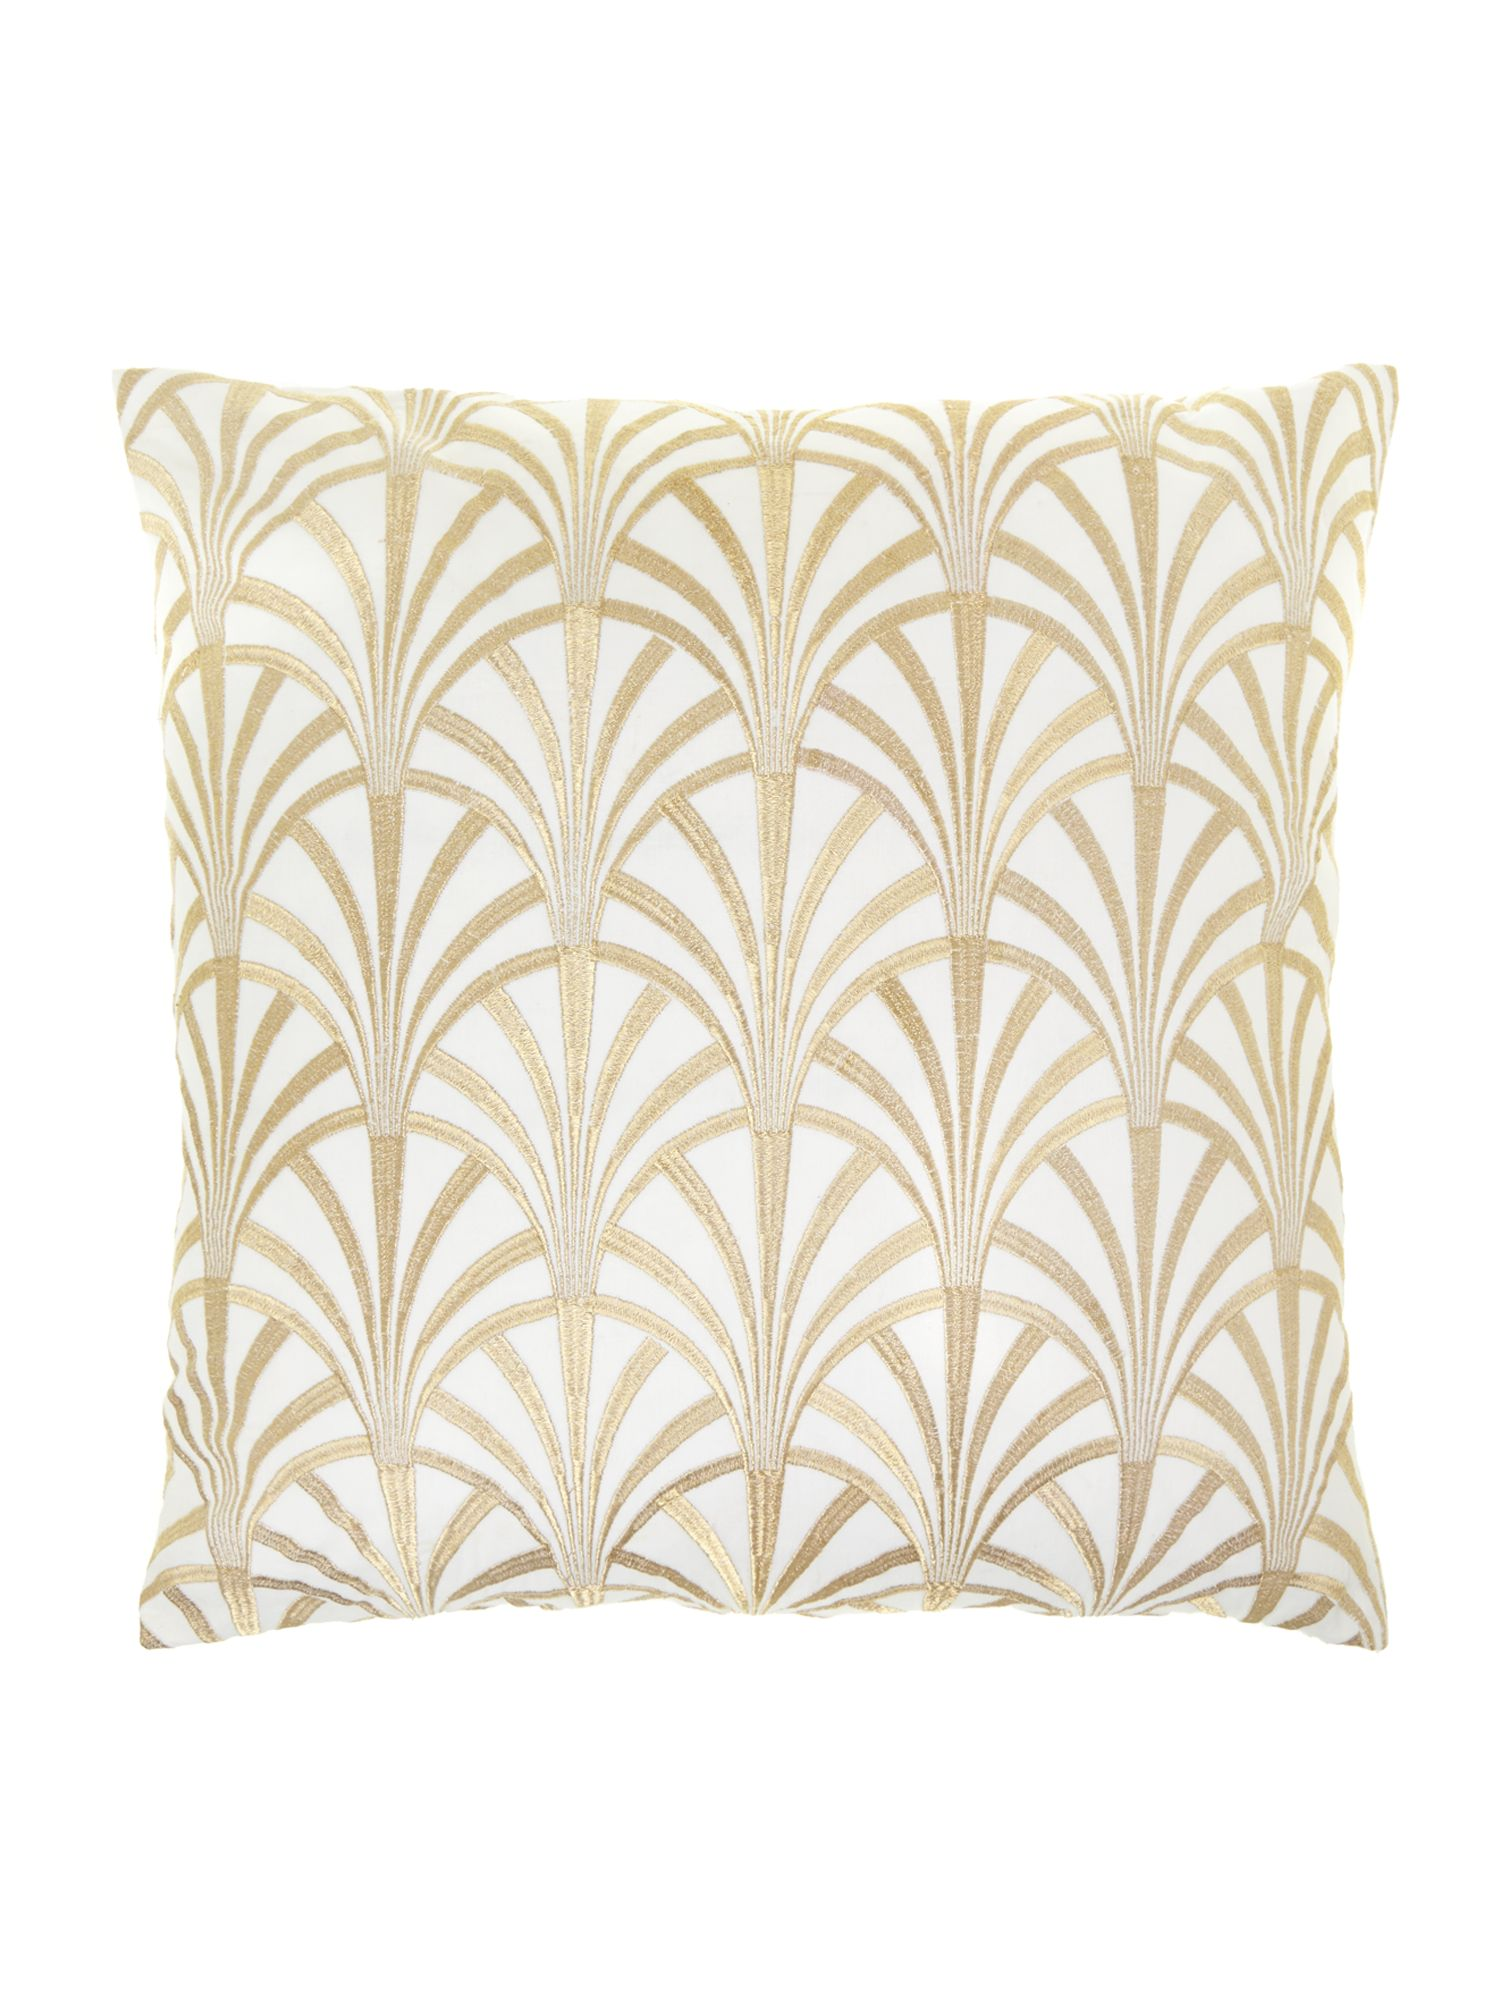 Fan embroidered cushion, cream